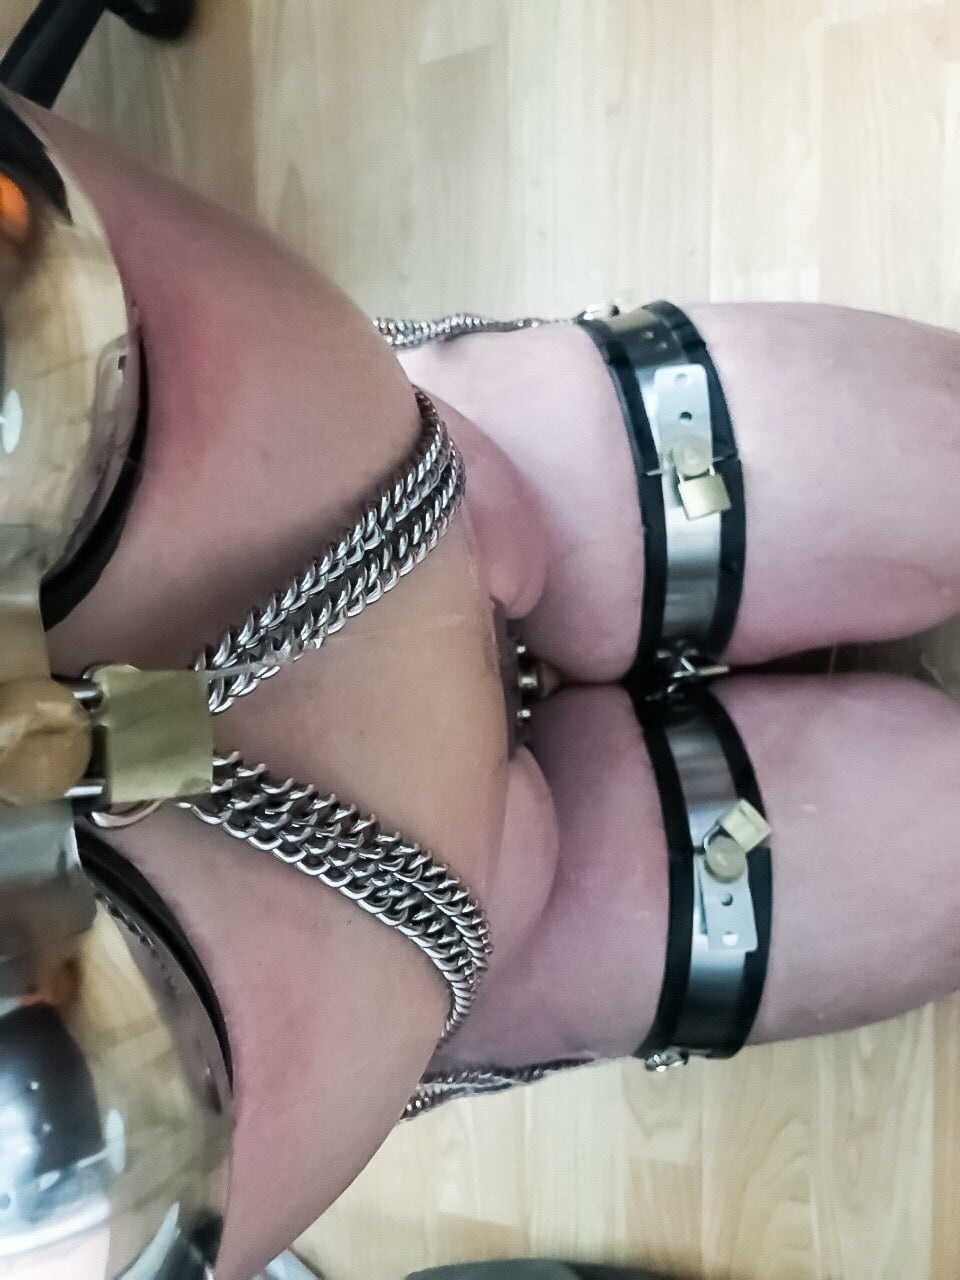 Engraved Lock For Chastity Play And Bondage